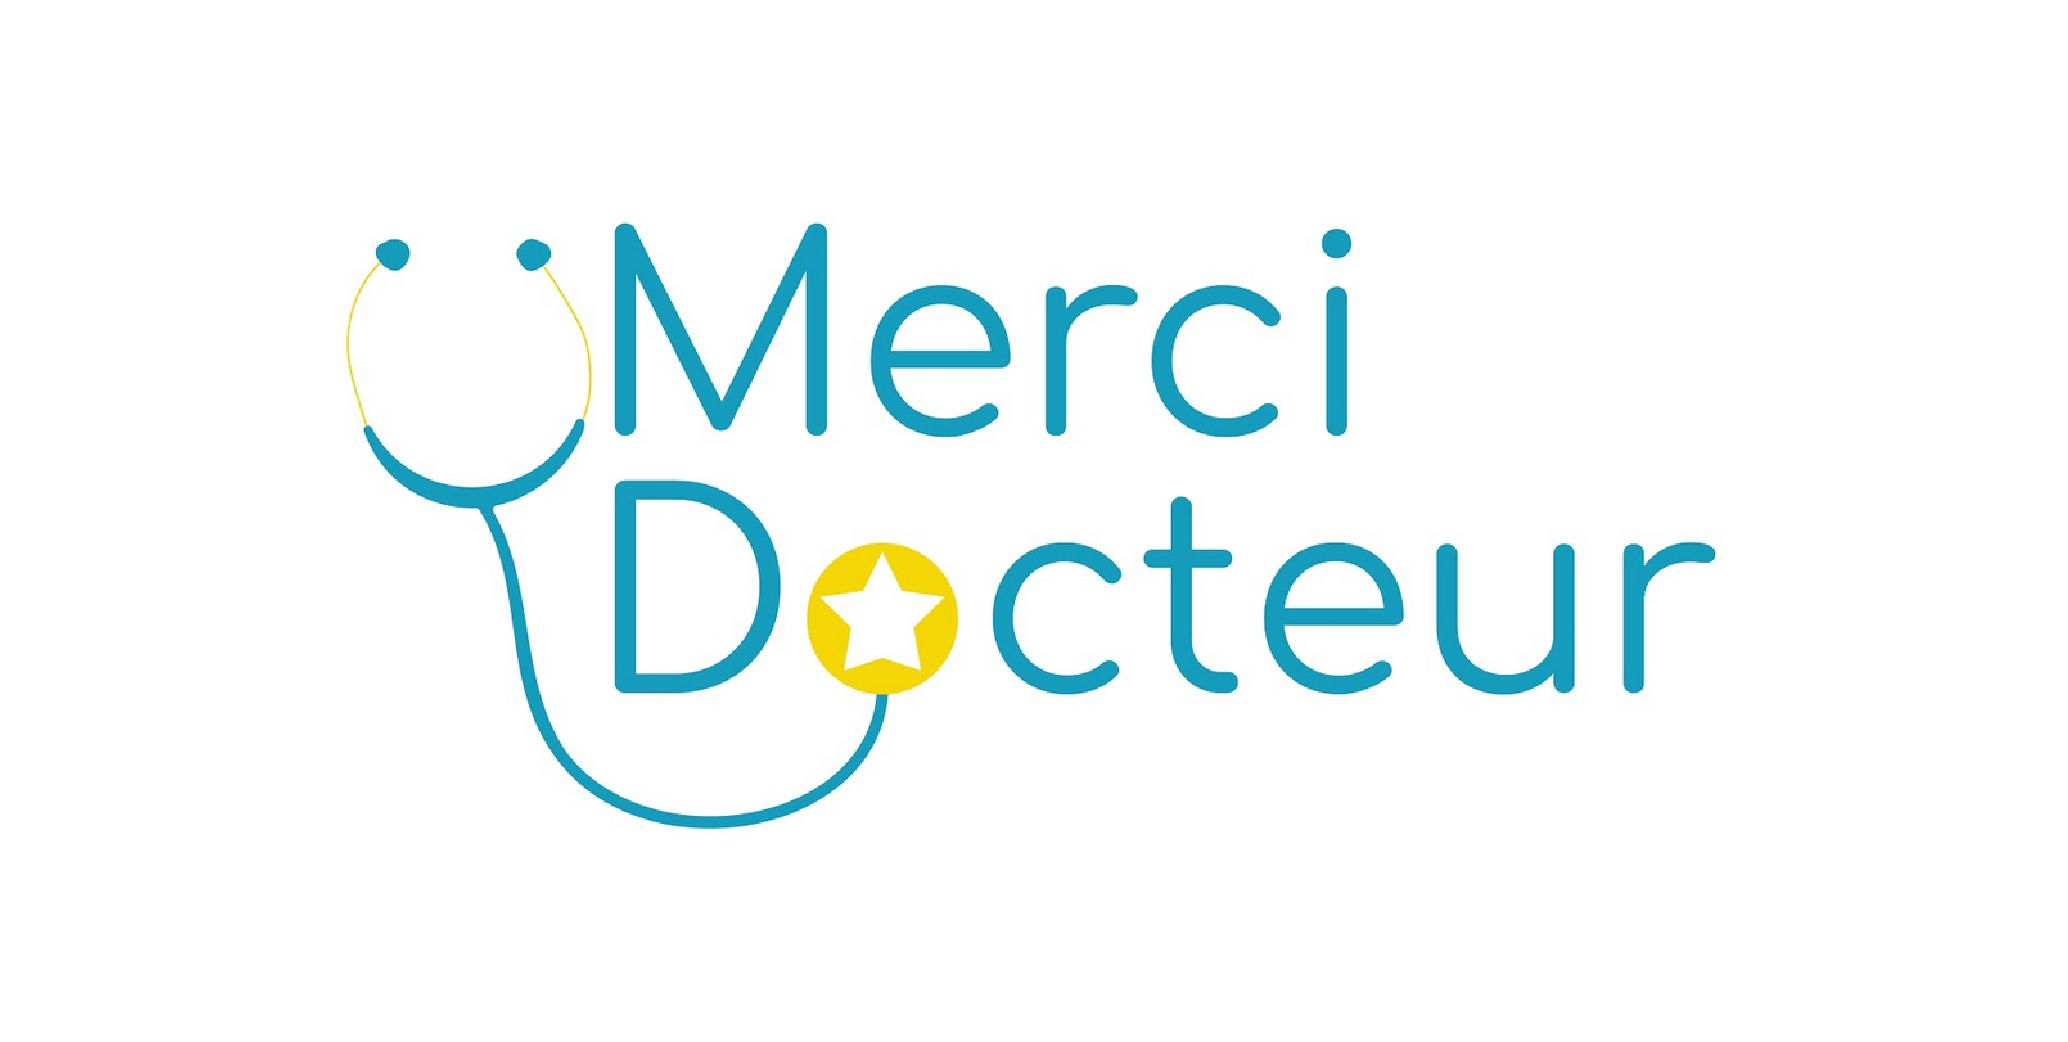 Start up logo merci docteur